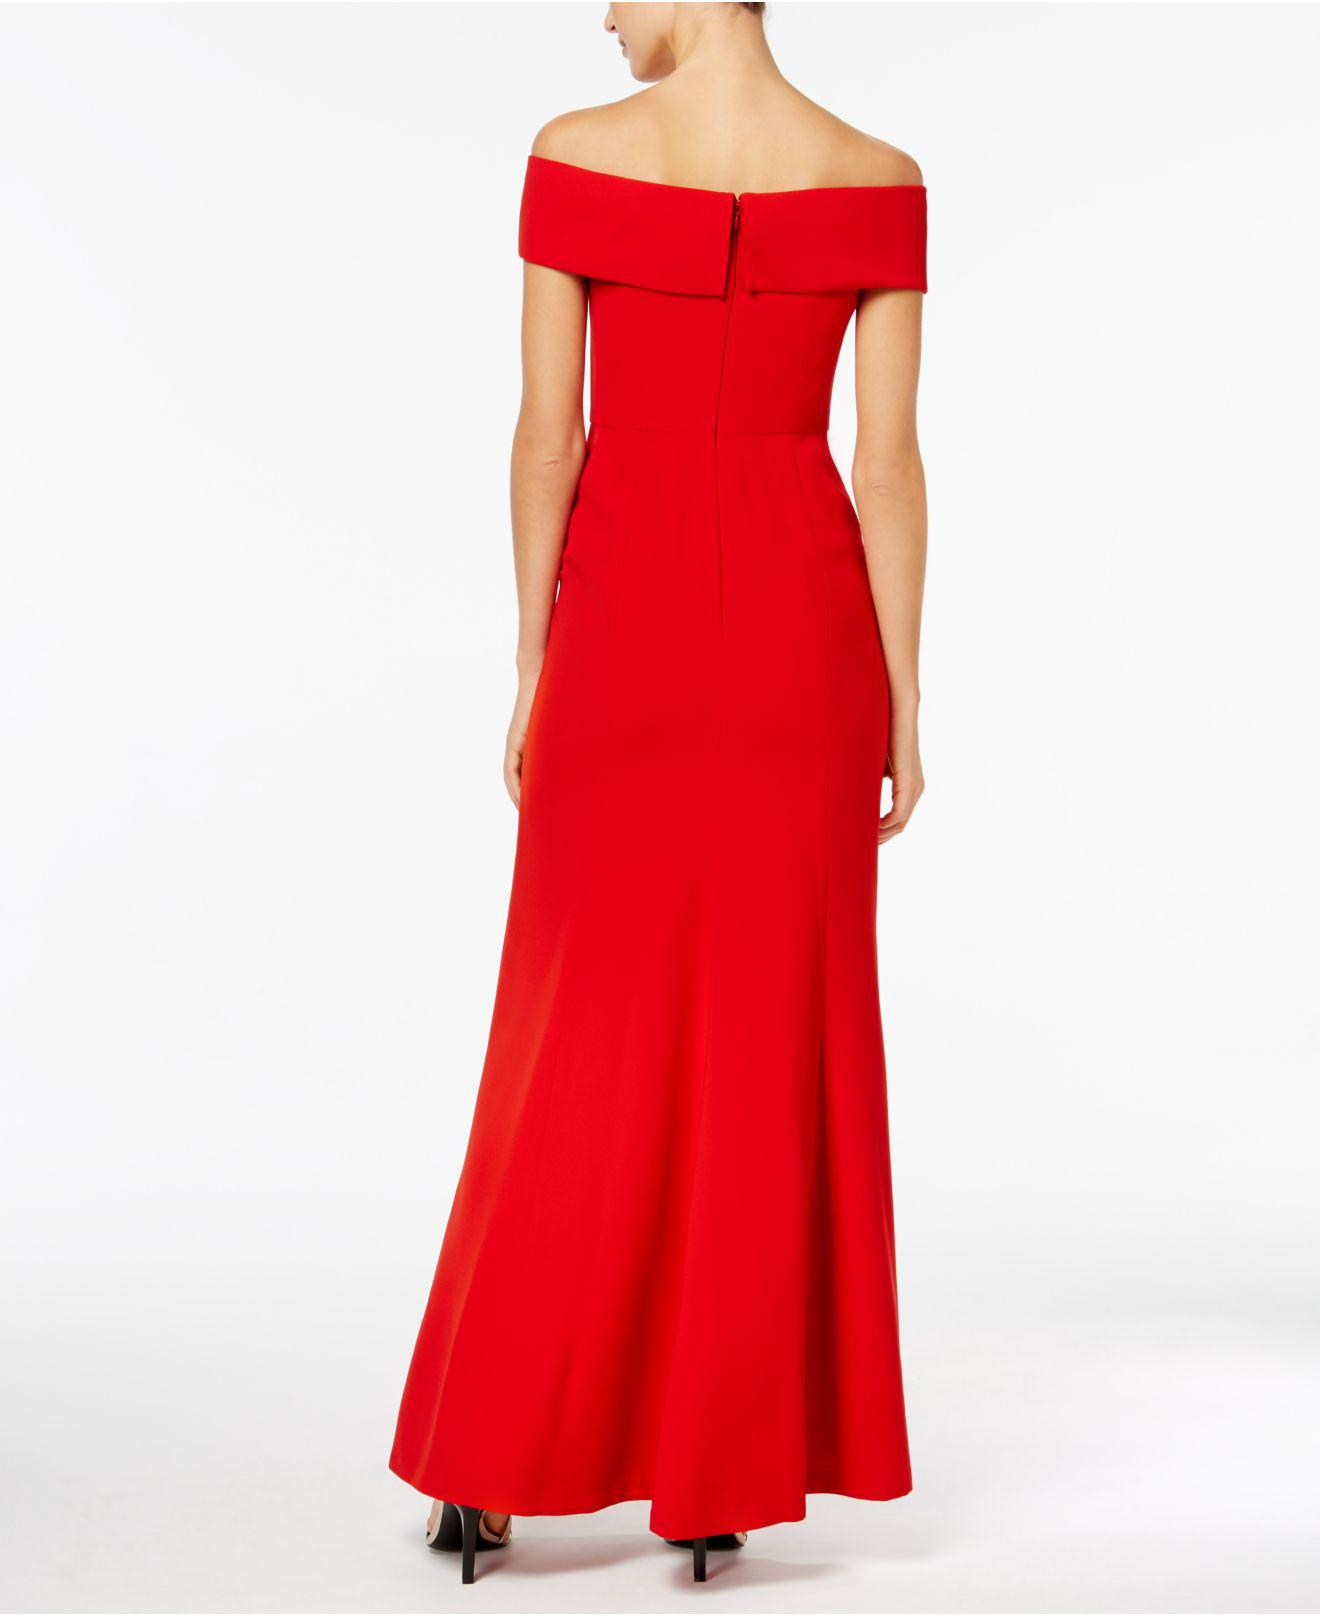 3dea888bc679 Lyst - CALVIN KLEIN 205W39NYC Foldover Off-the-shoulder Gown in Red